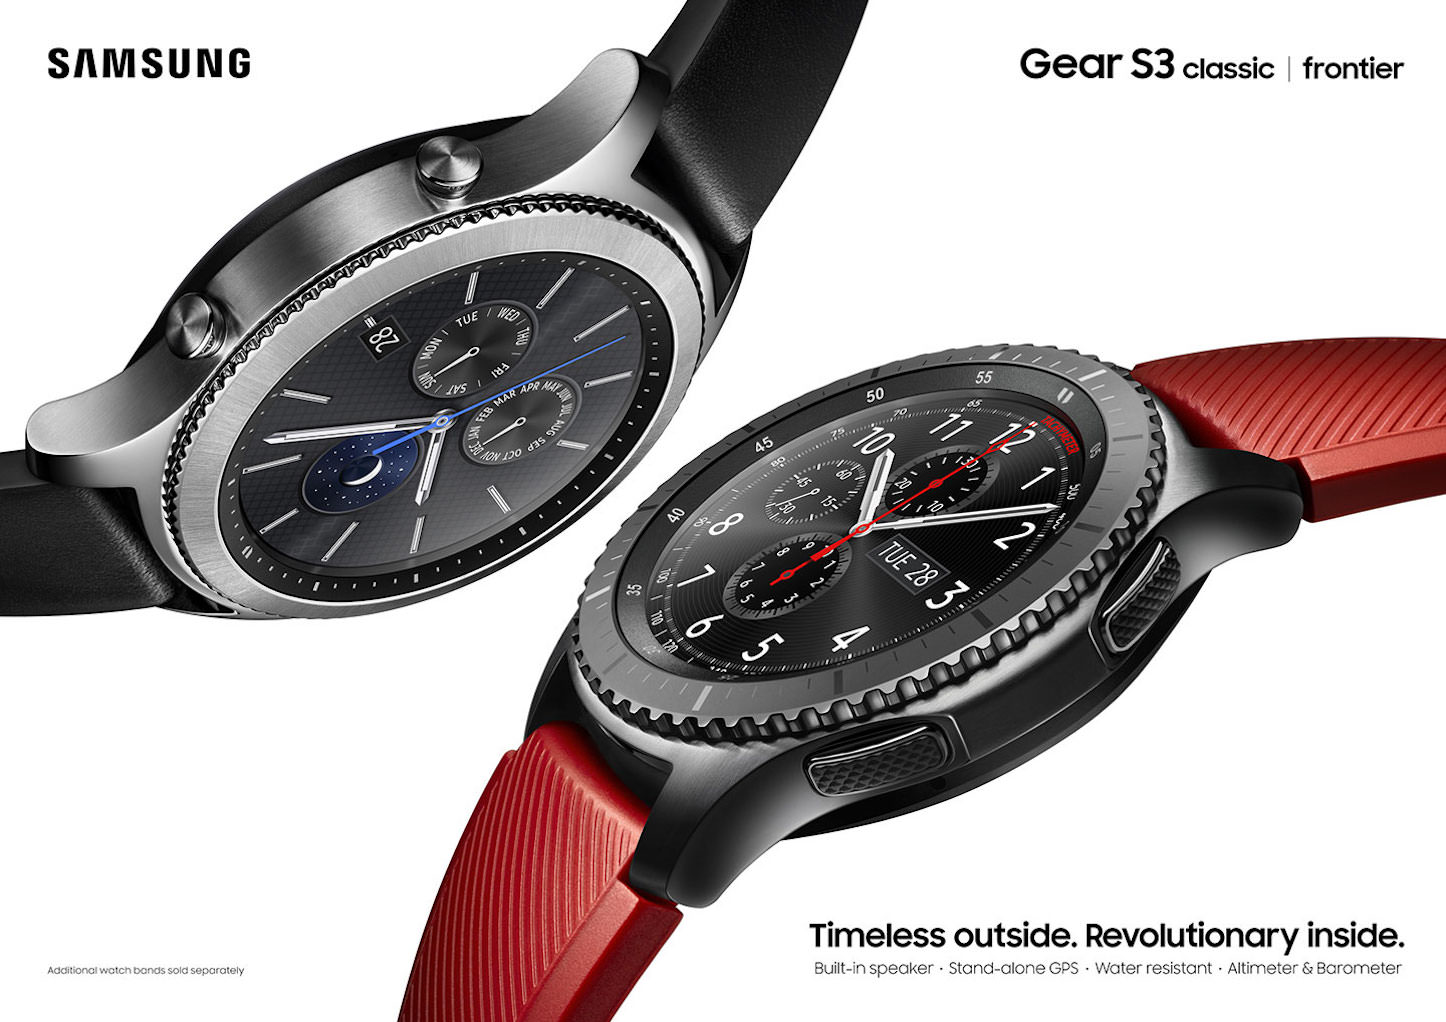 Samsung Gear S3 frontier classic 2P Red